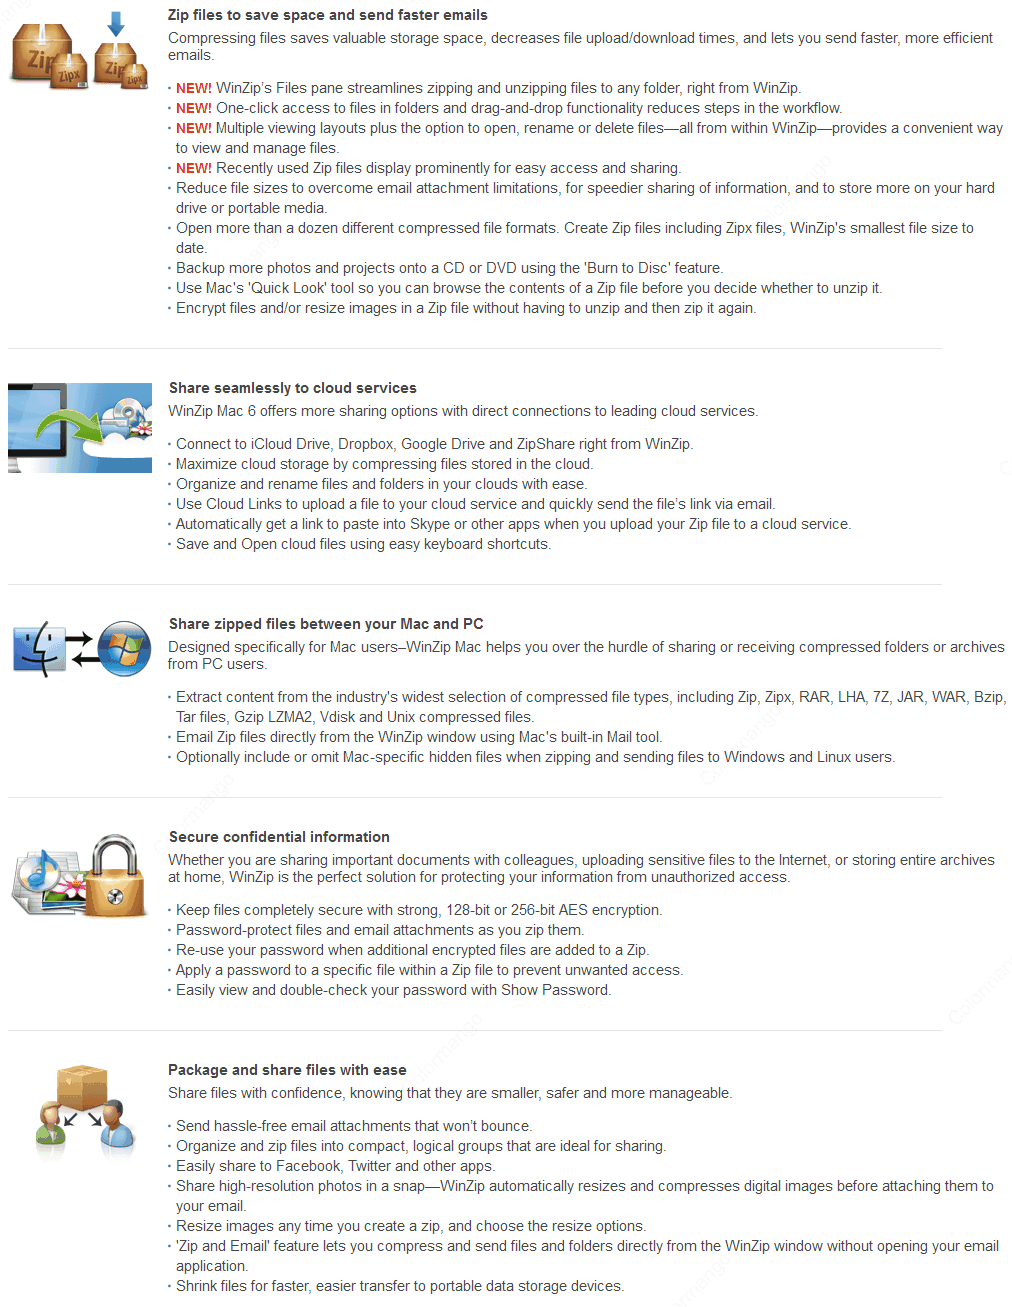 WinZip Mac Edition key Features